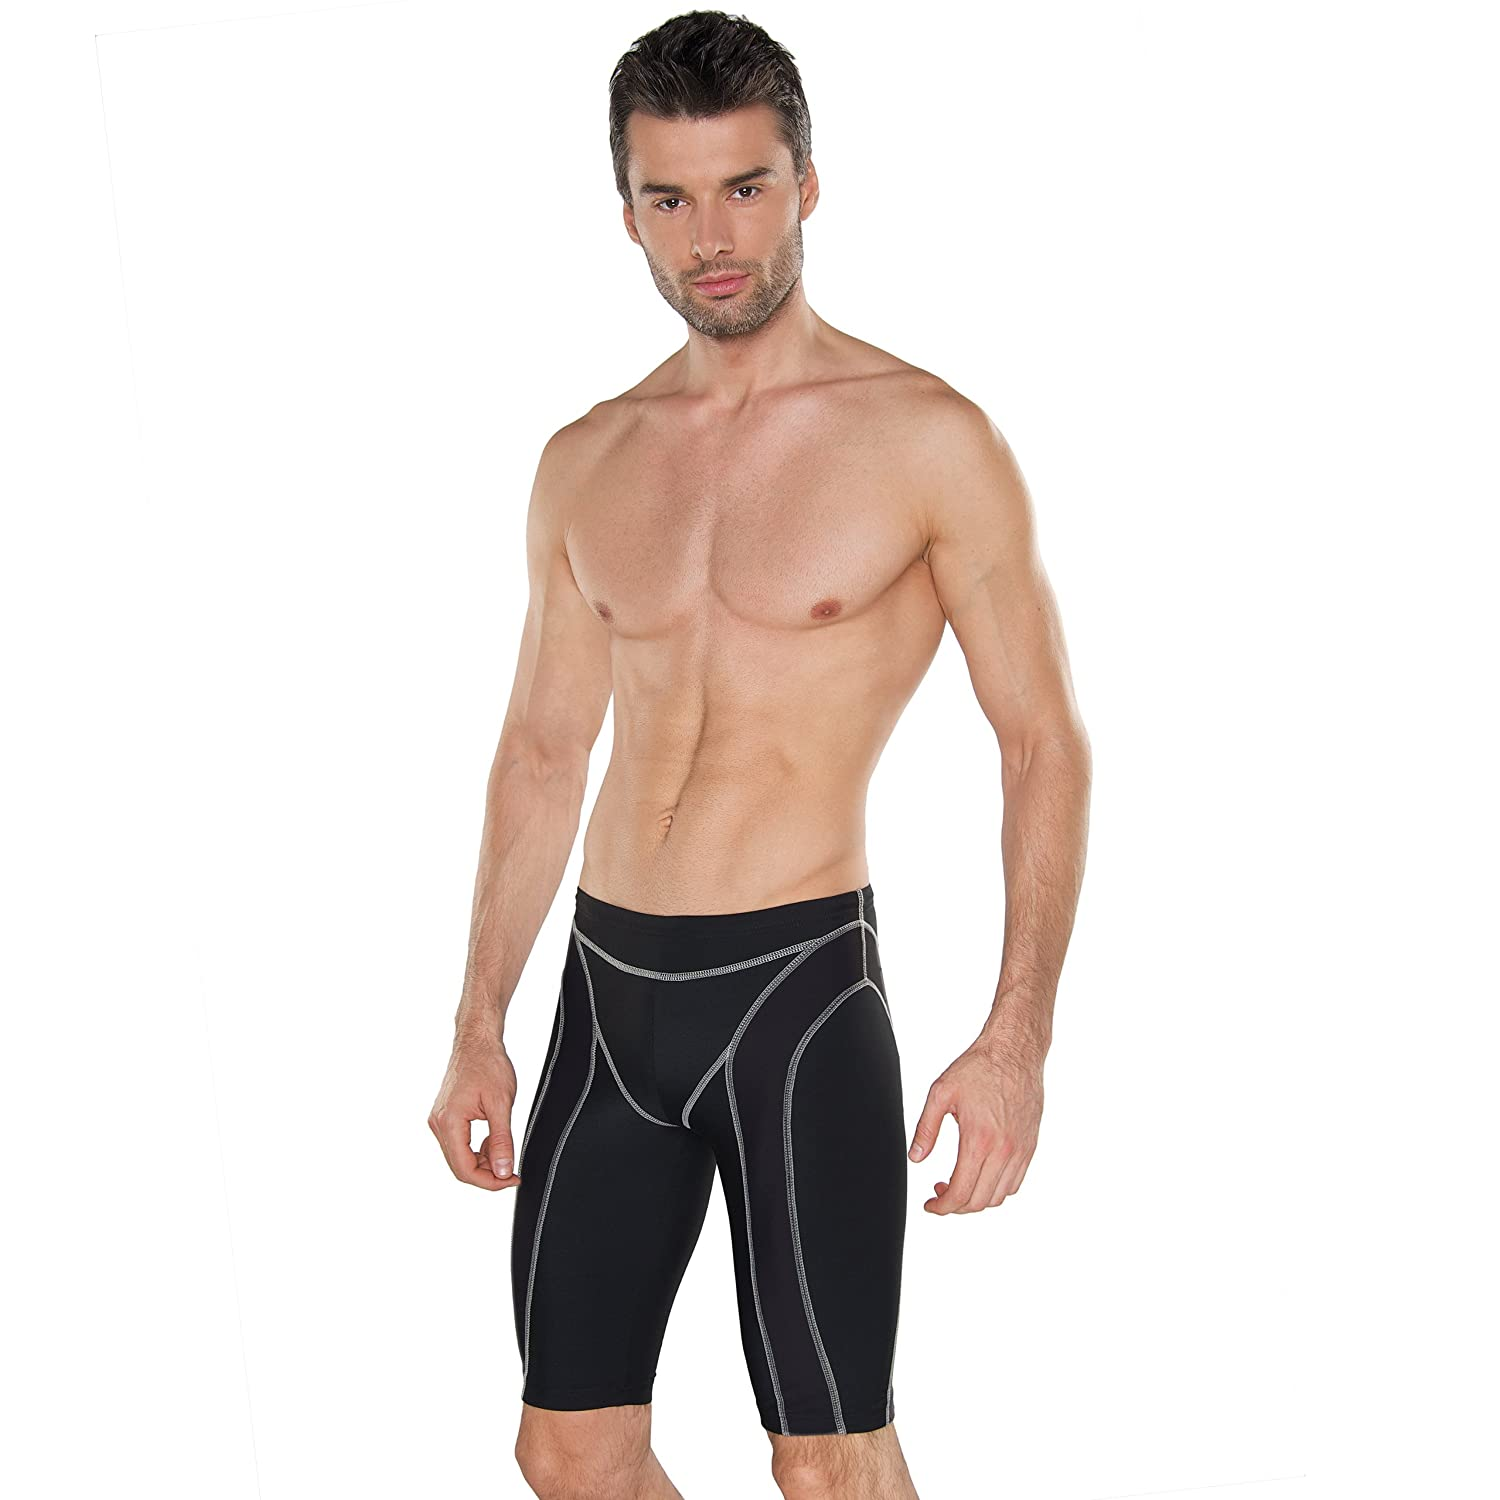 Shepa Men's Swimming Shorts